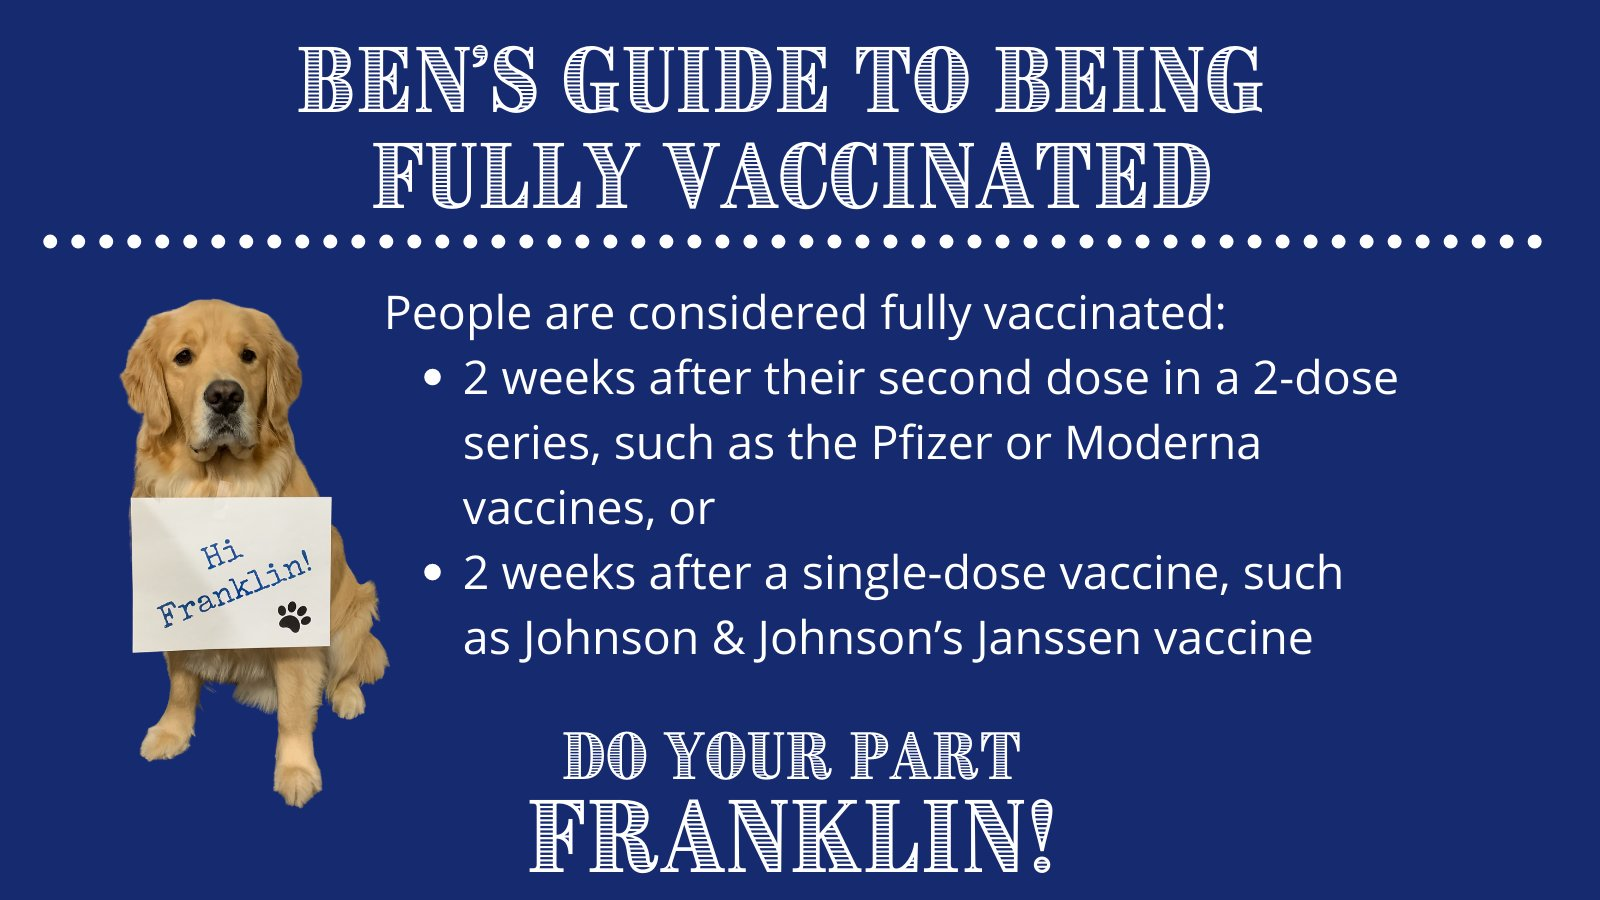 Town of Franklin, MA: Ben's guide to fully vaccinated status